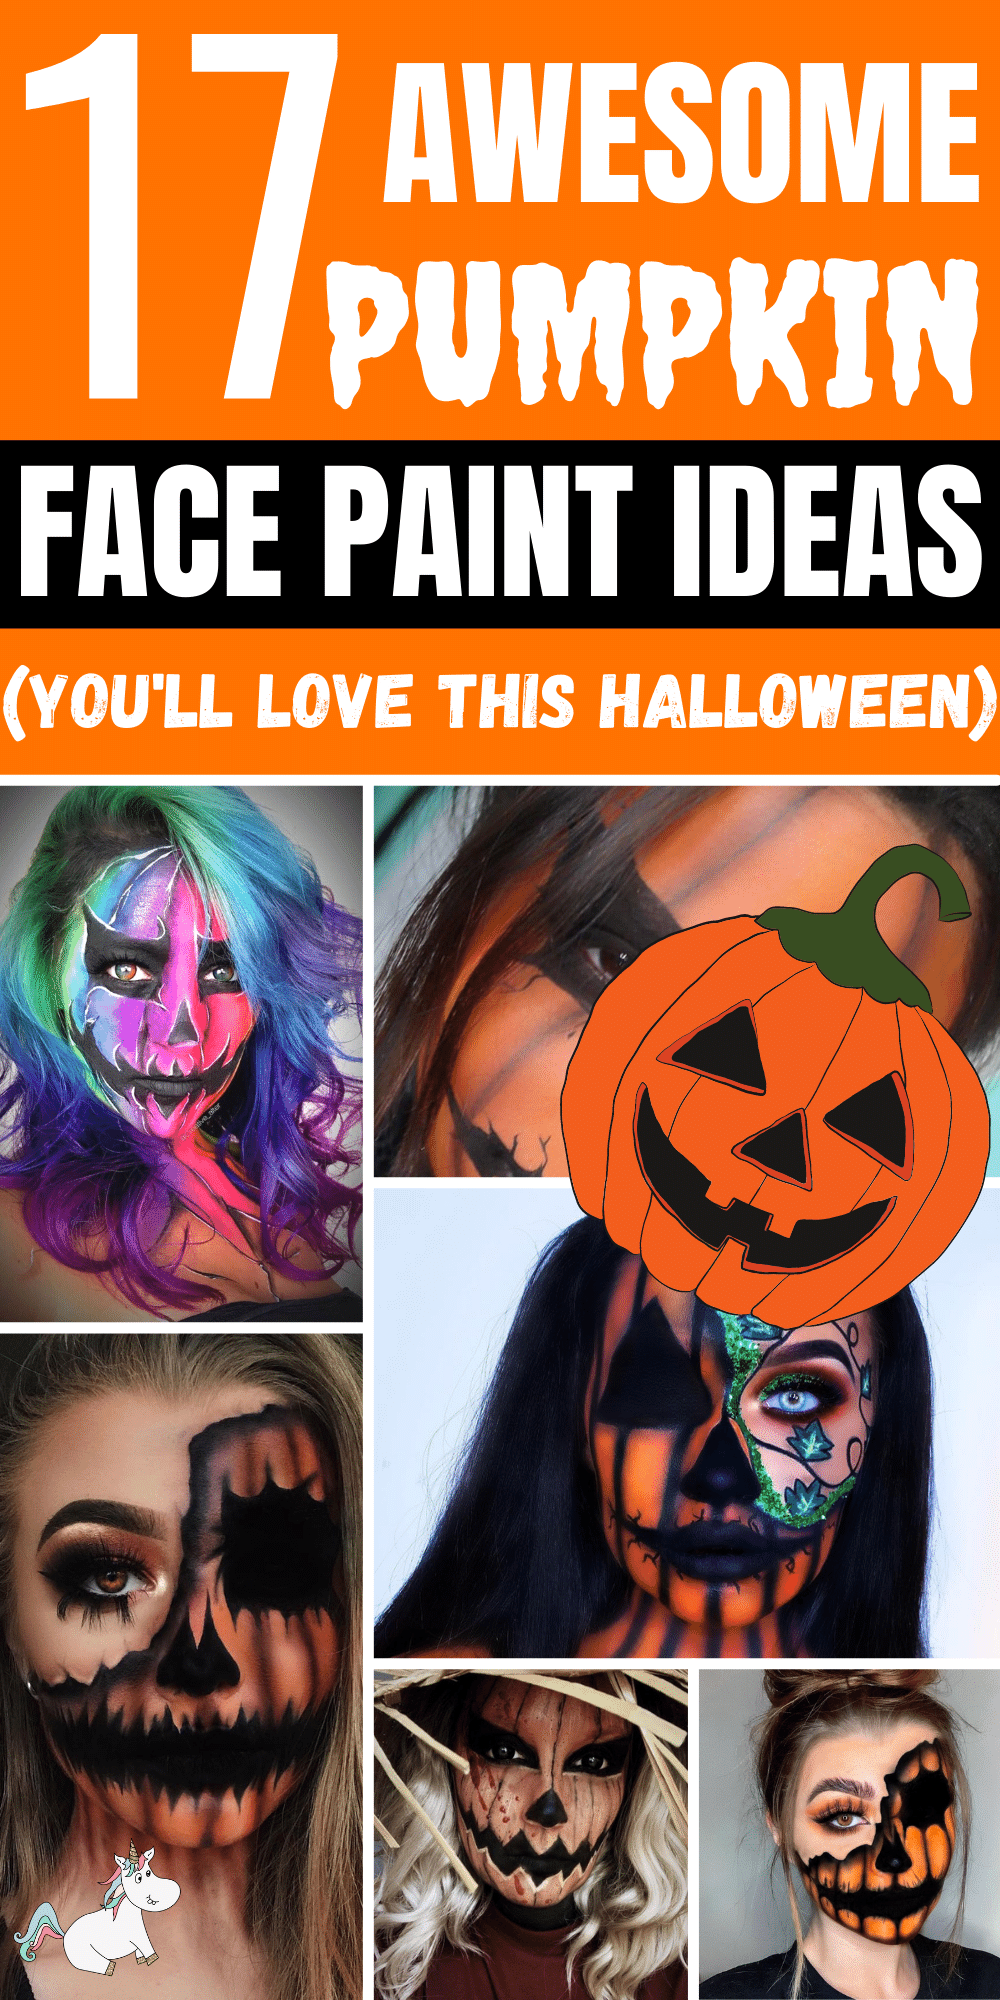 17 Pumpkin face paint ideas you need to try this Halloween! These pumpkin makeup looks are creative, unique, cute and scary!